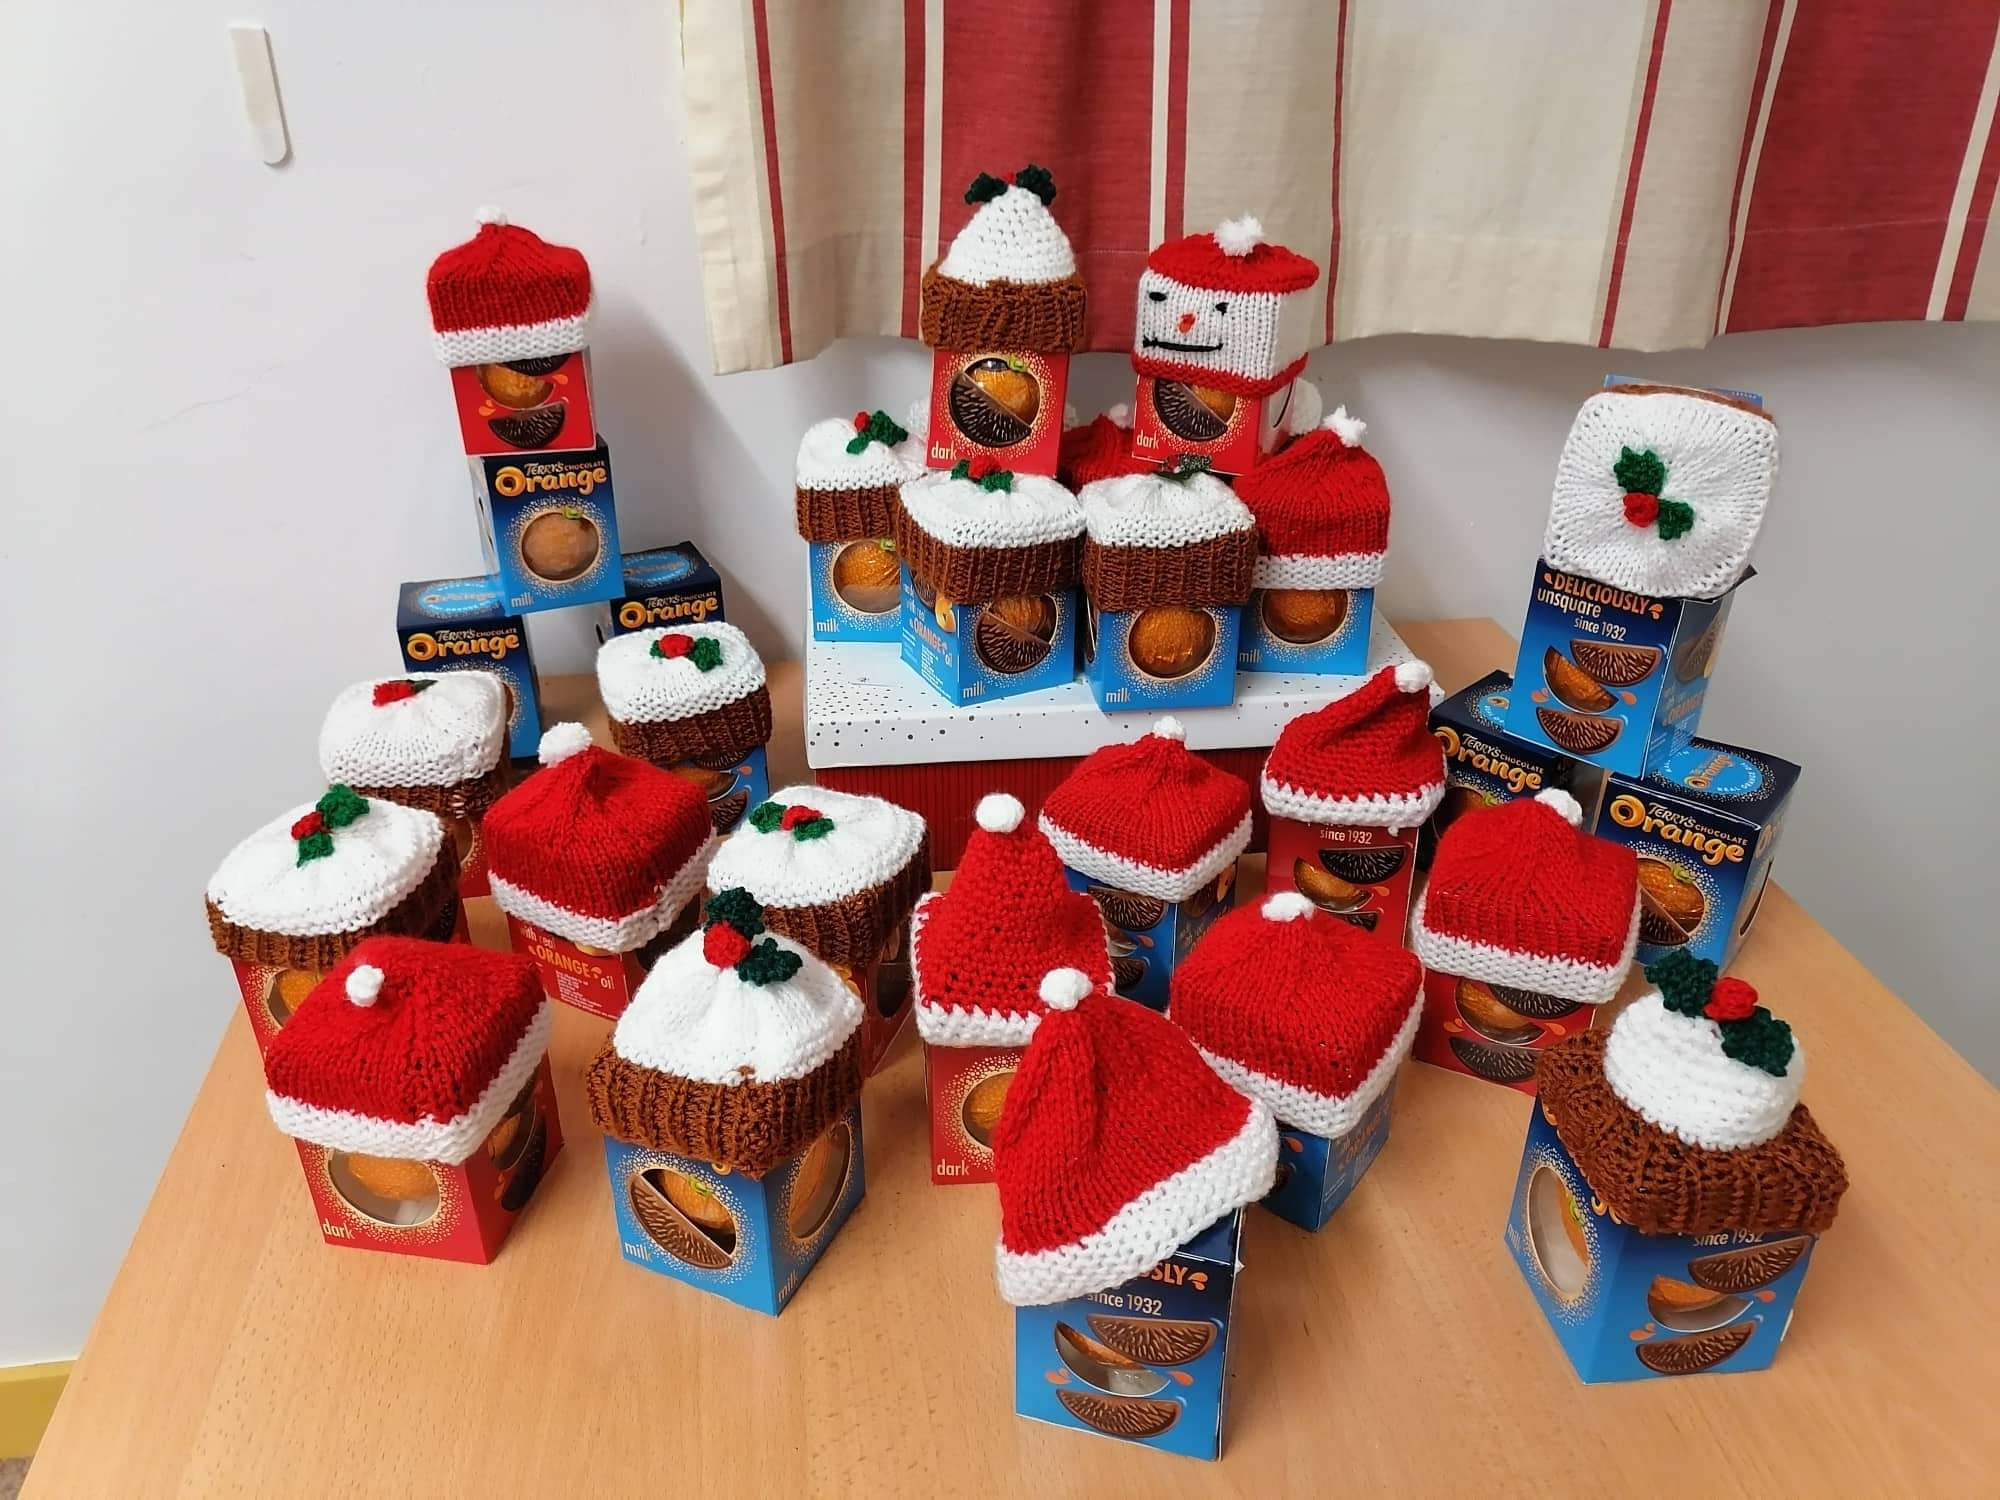 A pile of chocolate oranges with festive knits toppers